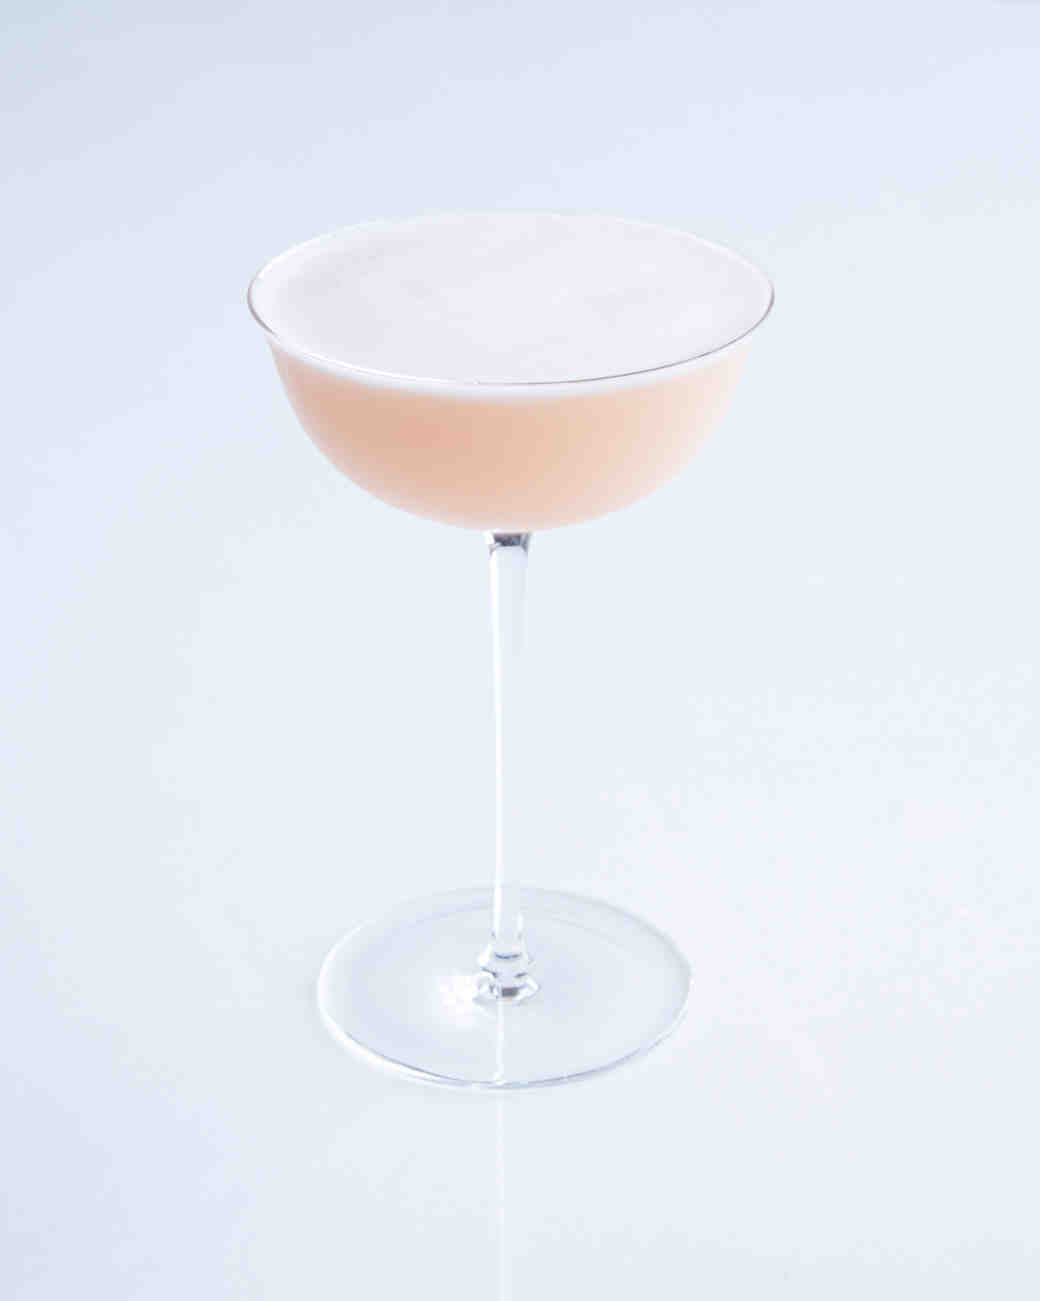 cocktail-lillet-blush-120-d111274-0814.jpg